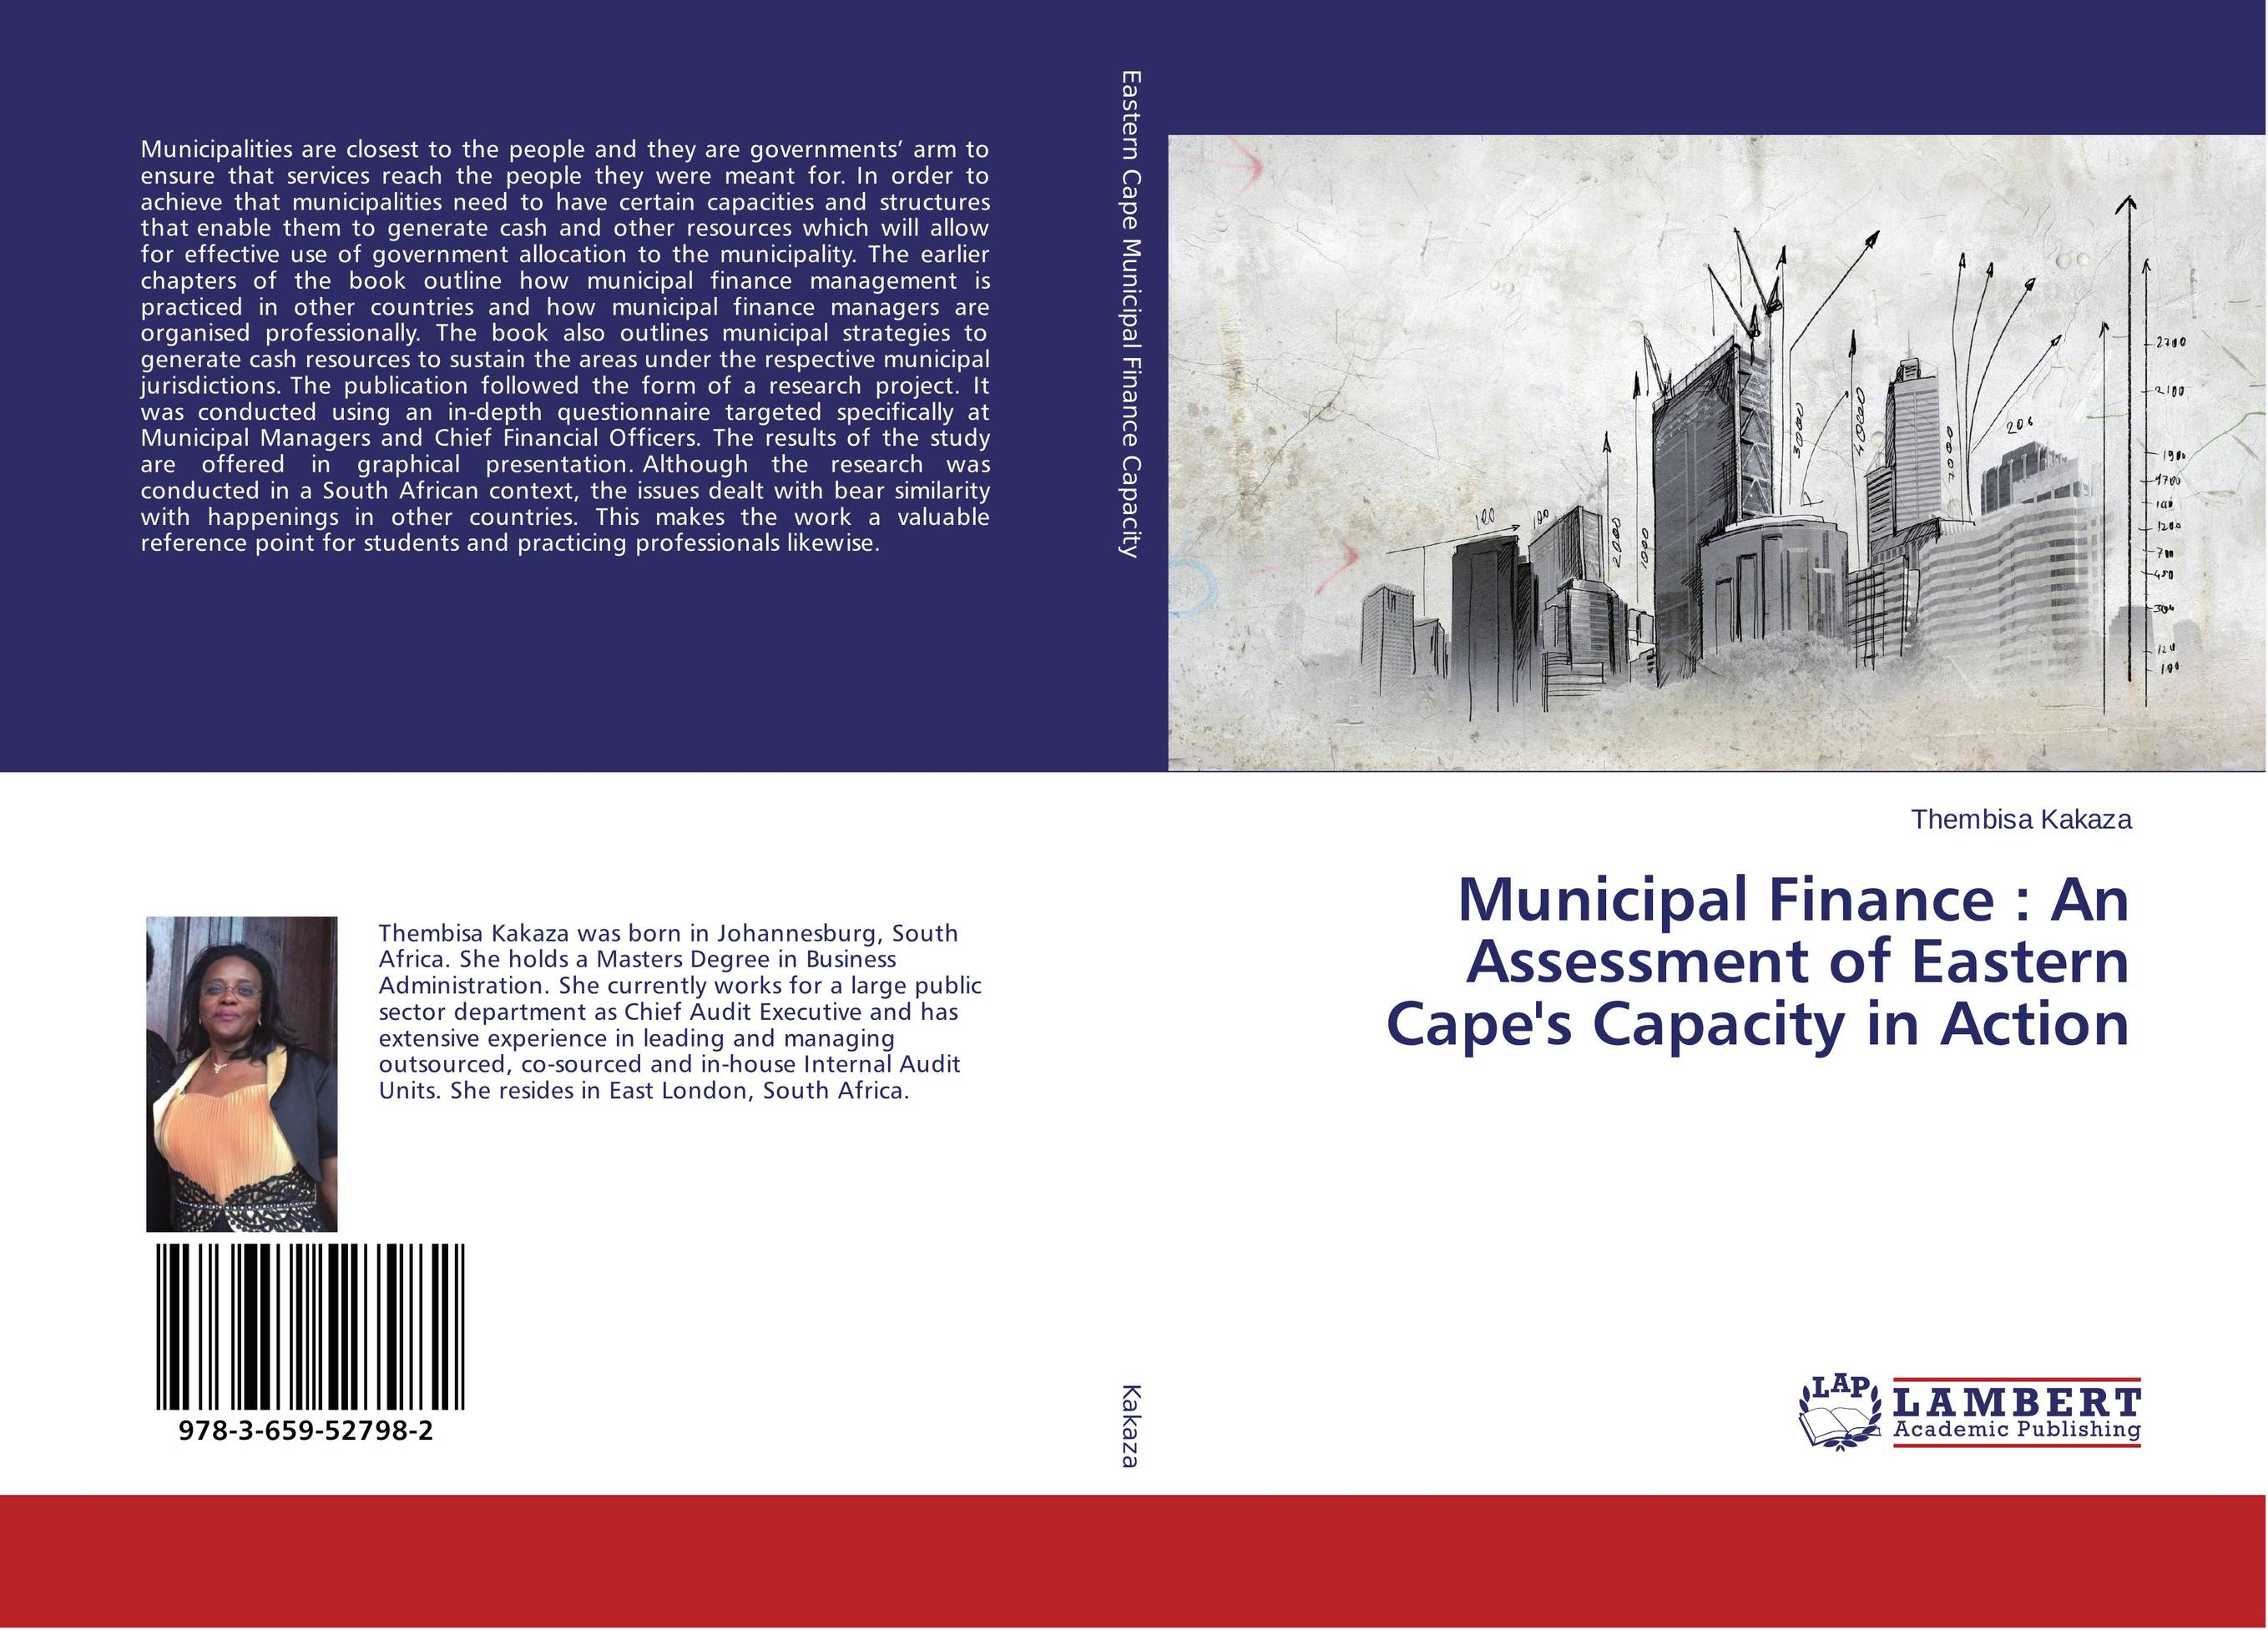 Municipal Finance : An Assessment of Eastern Cape's Capacity in Action cj stanley late ching finance – hu kuang–yung as an innovator